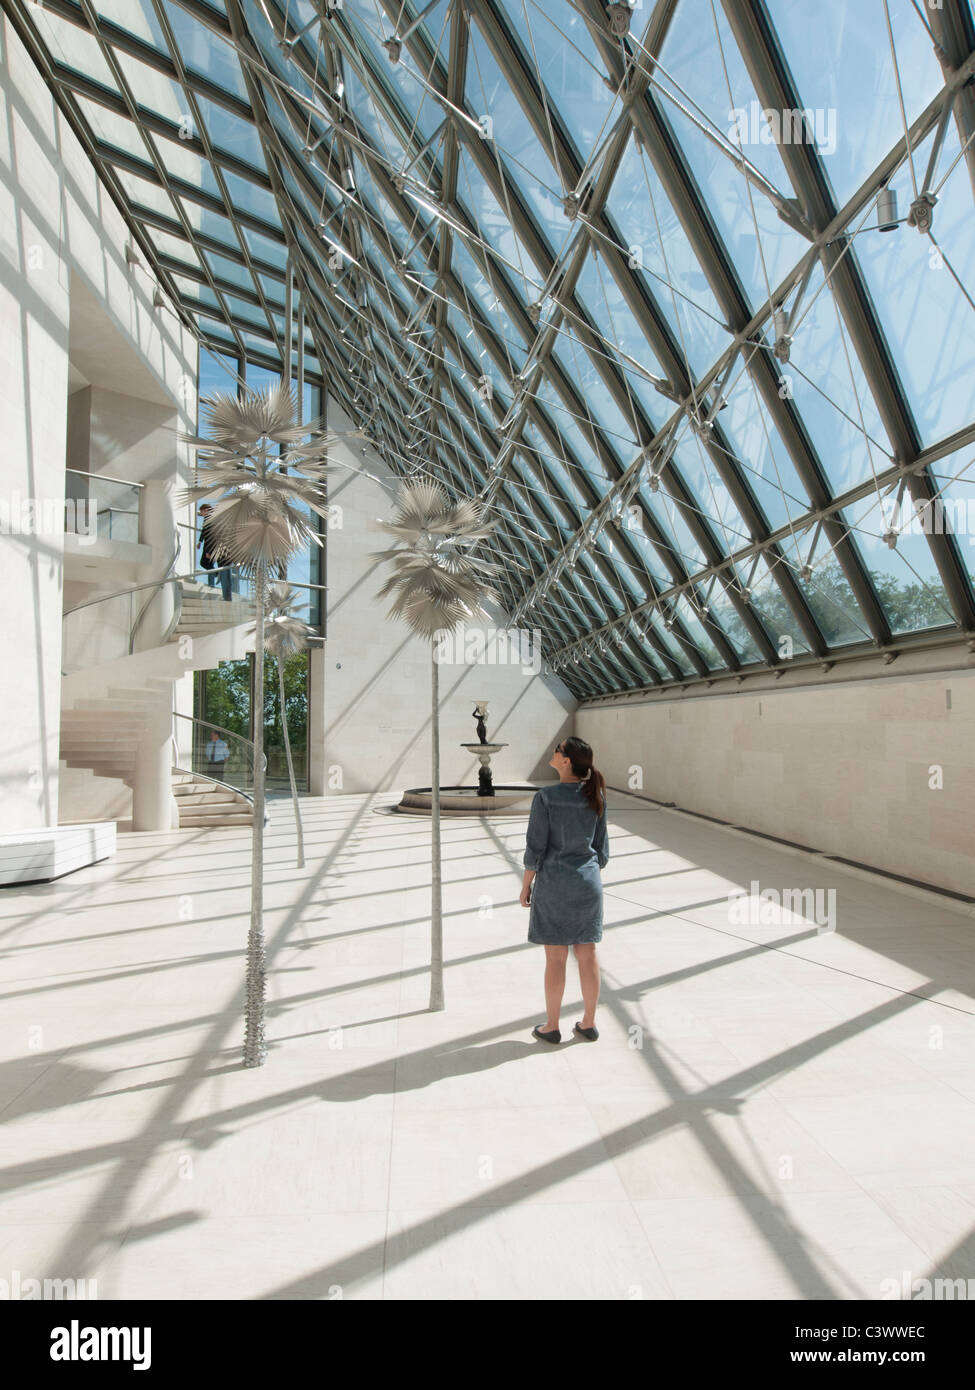 Woman in Sculpture Hall at Modern Art Museum MUDAM or Musee d'Art Moderne Grand Duc Jean; Luxembourg City - Stock Image